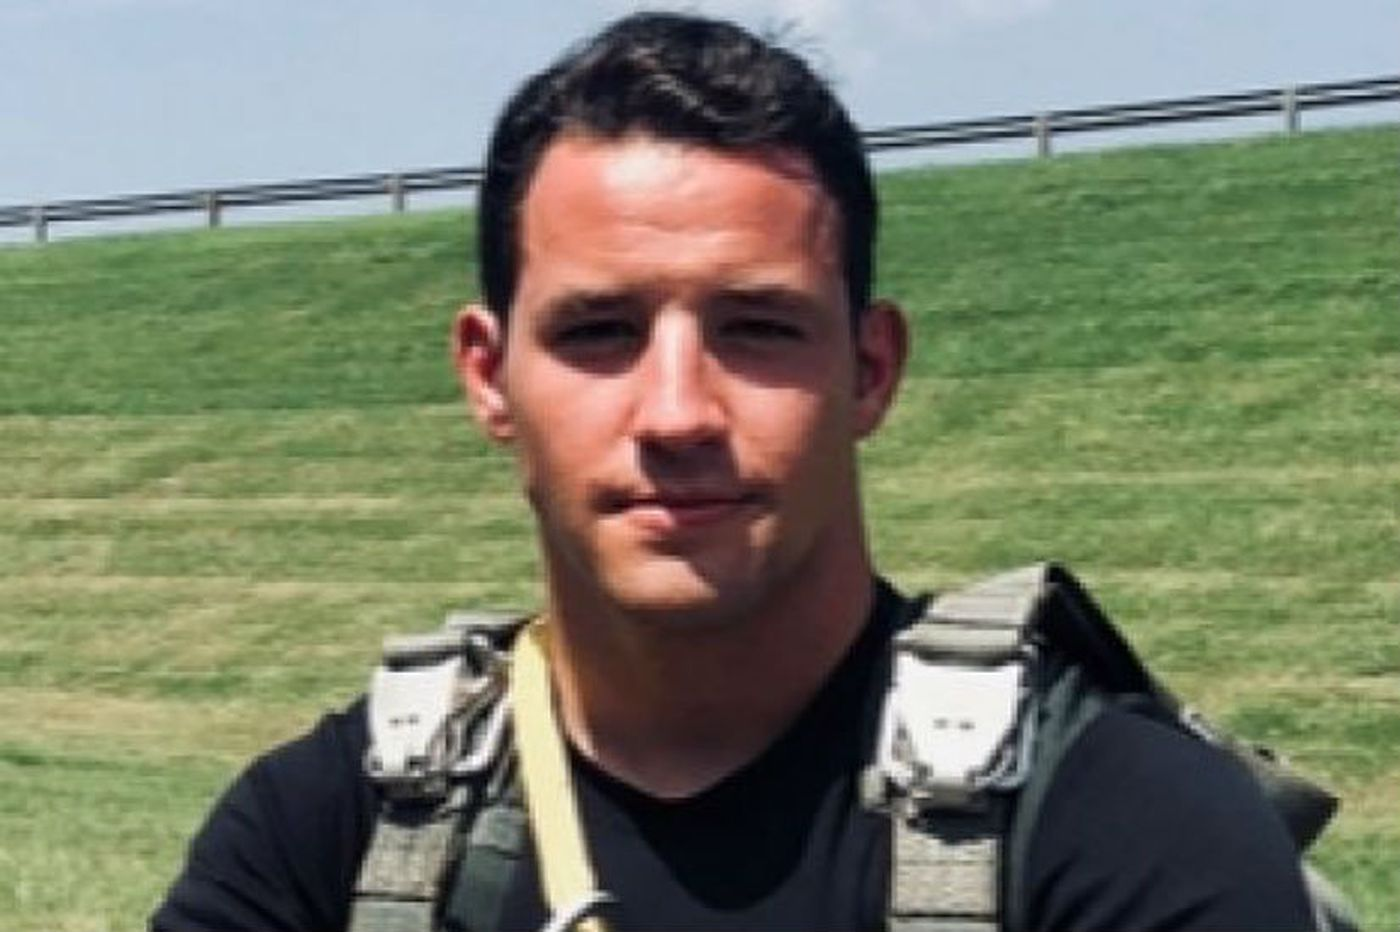 Capt. Connor Bednarzyk, 25, Army Ranger and Central Bucks East graduate killed in tactical vehicle accident